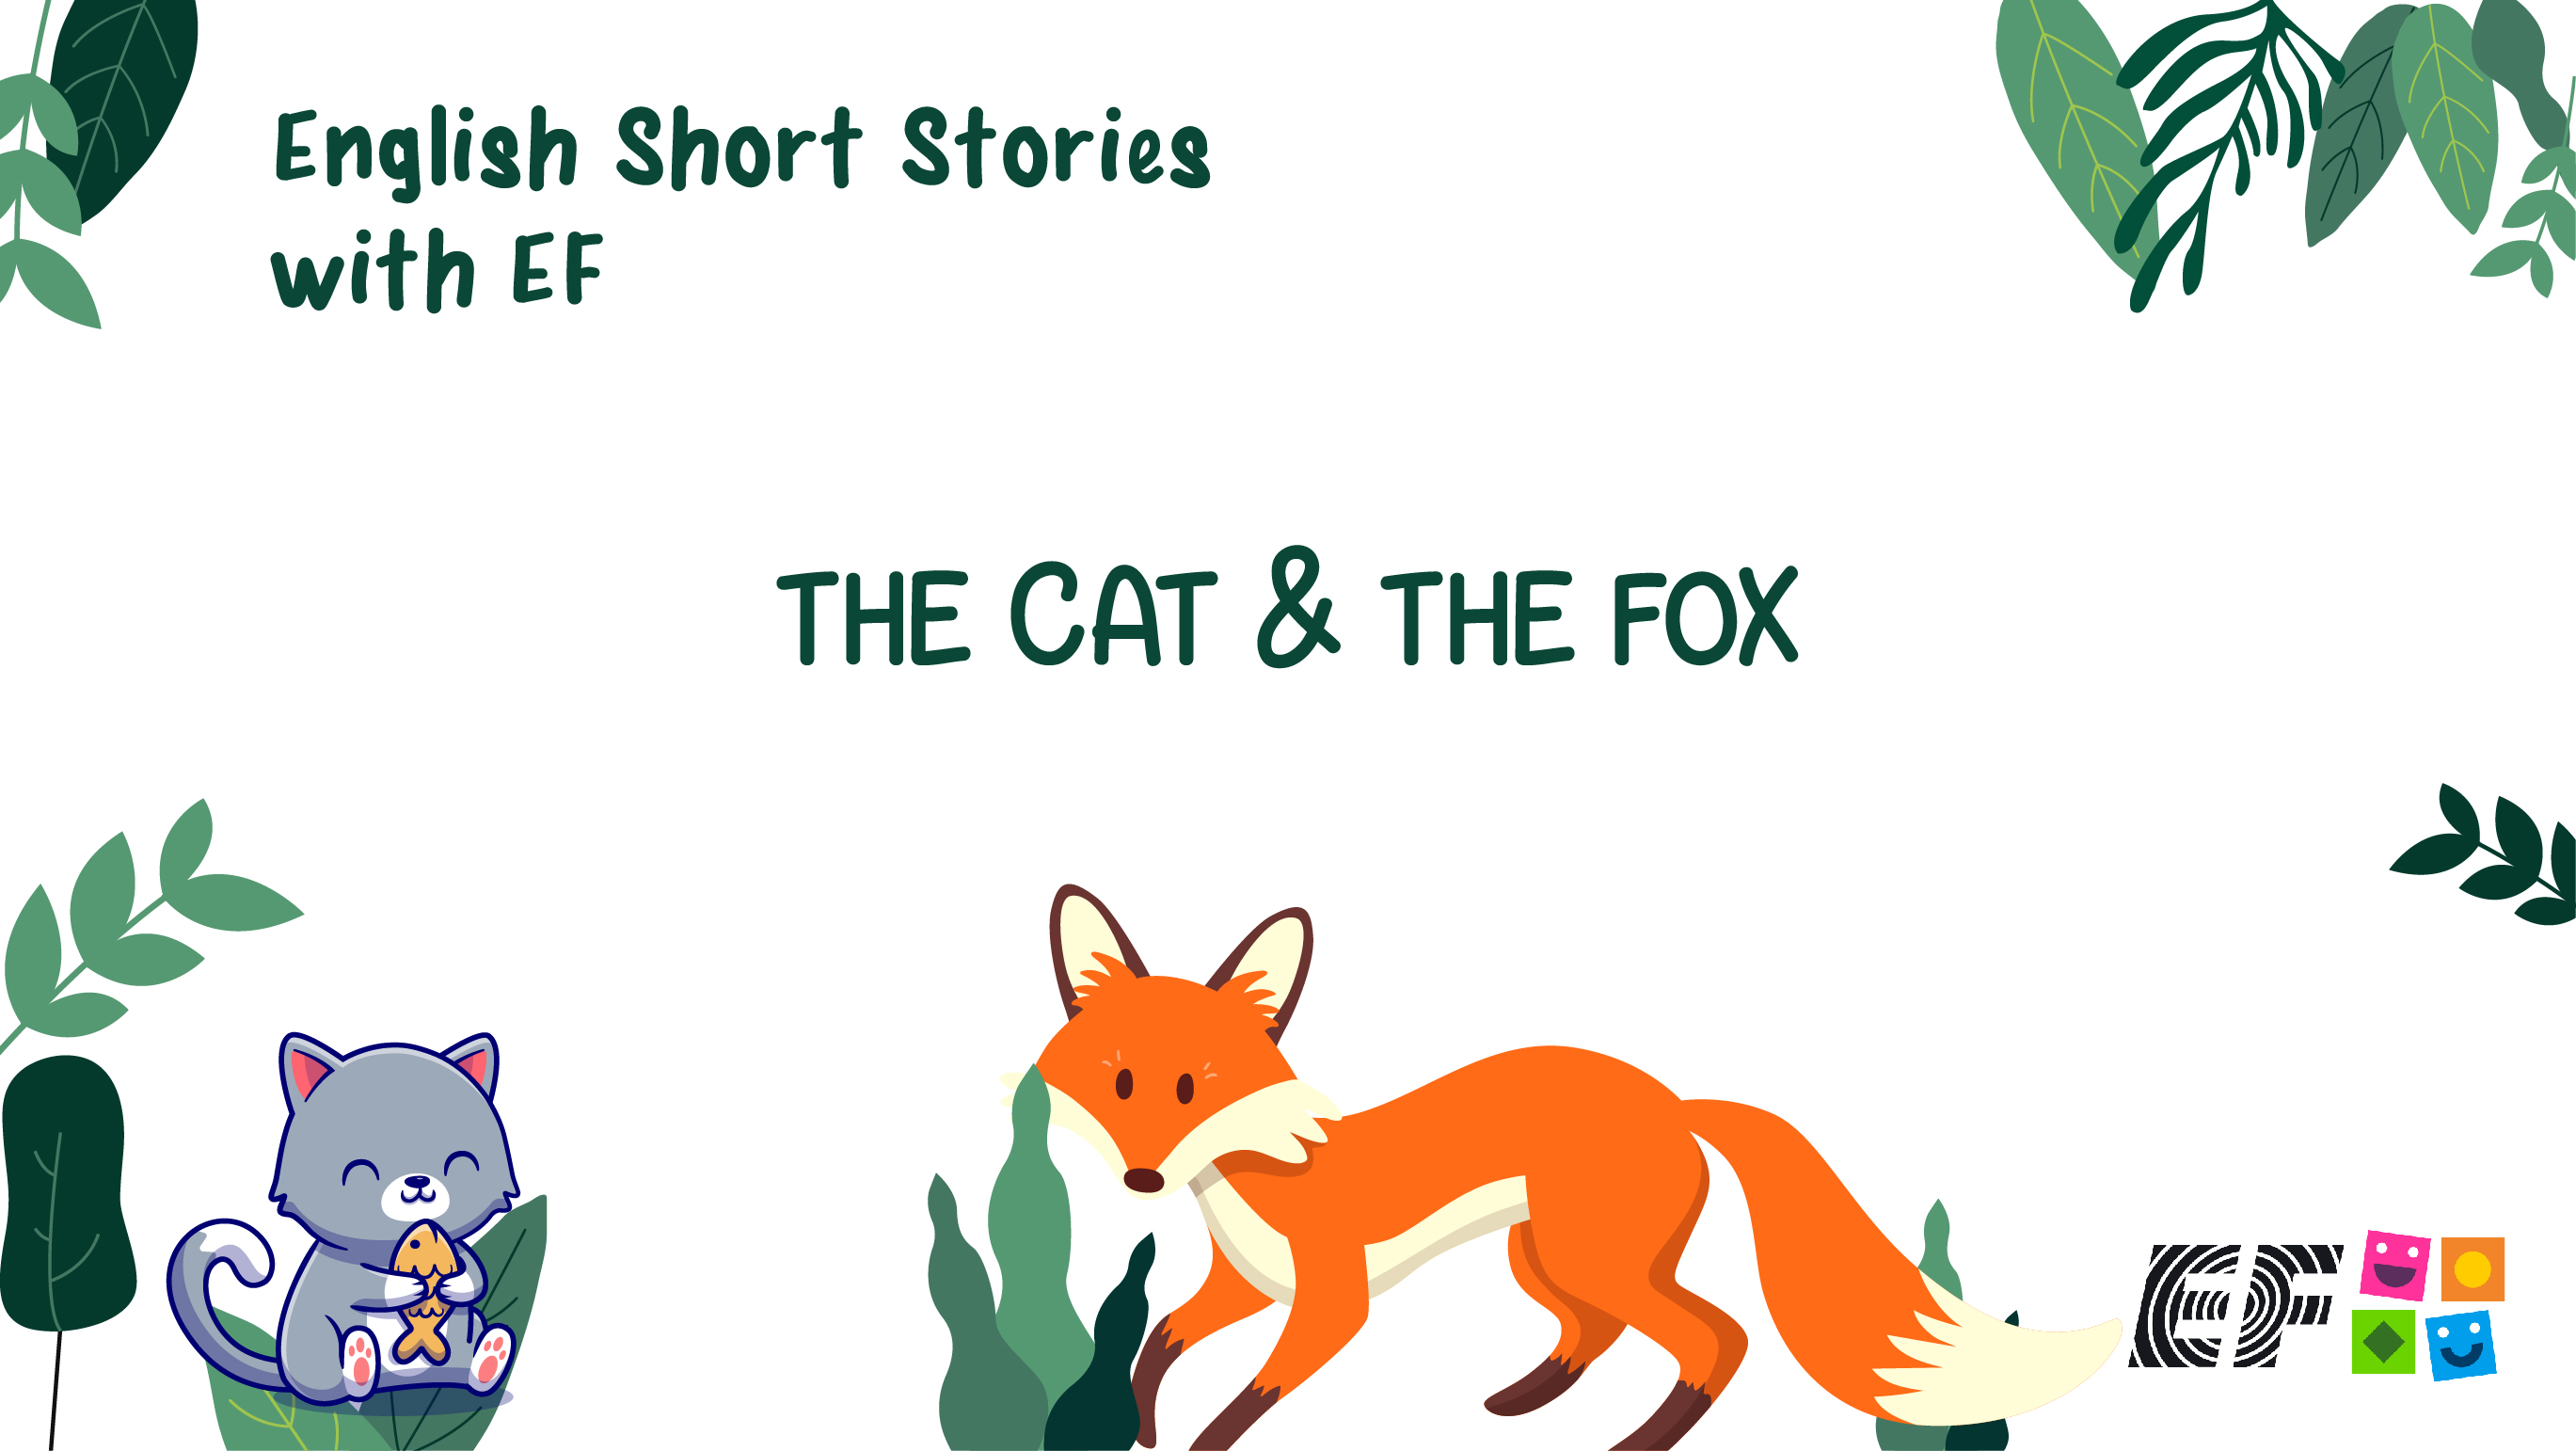 English Short Stories - The Cat and The Fox